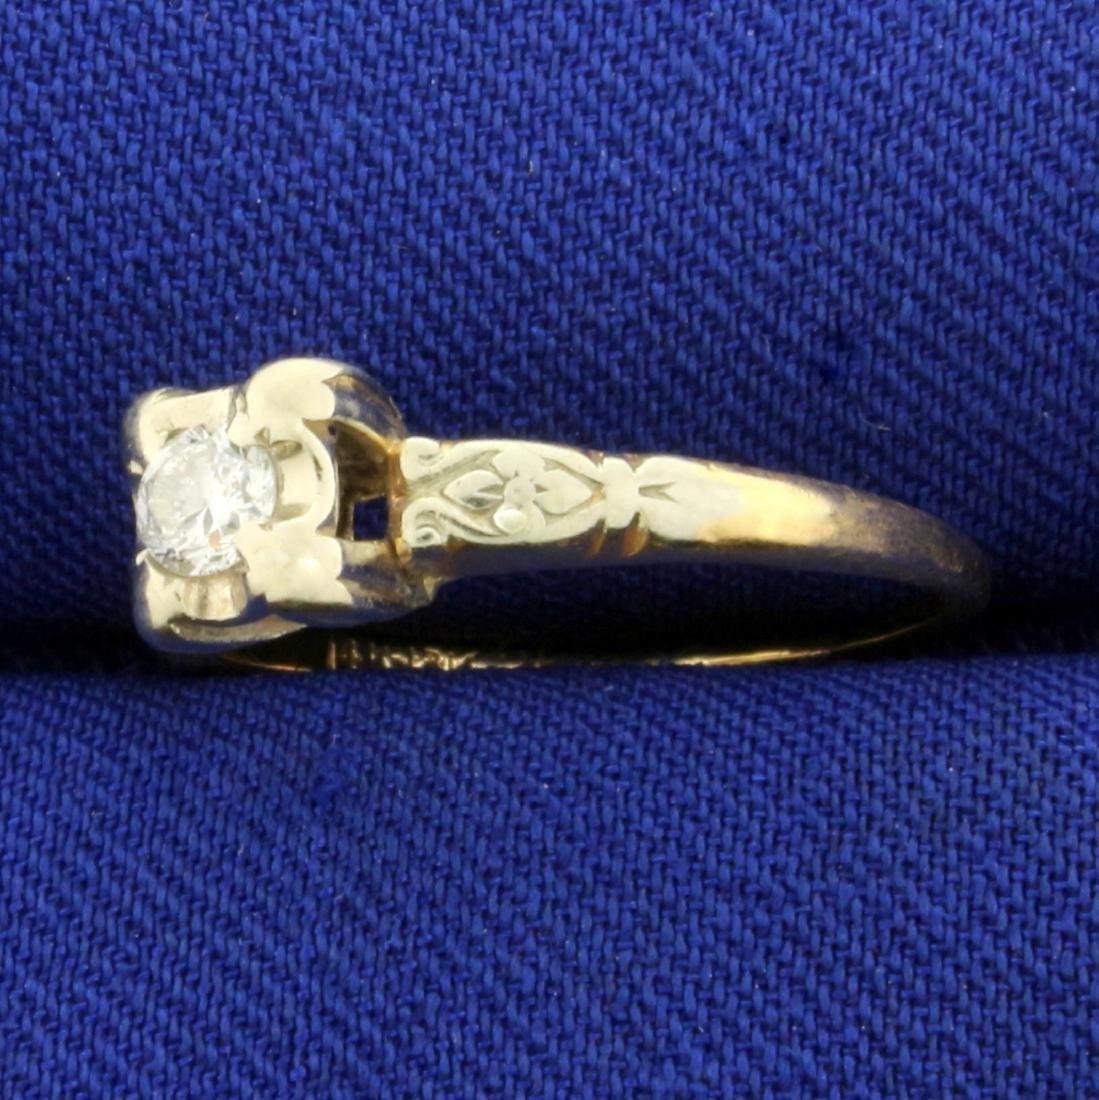 Vintage Round Solitaire Diamond Ring in 14K and 18K - 2